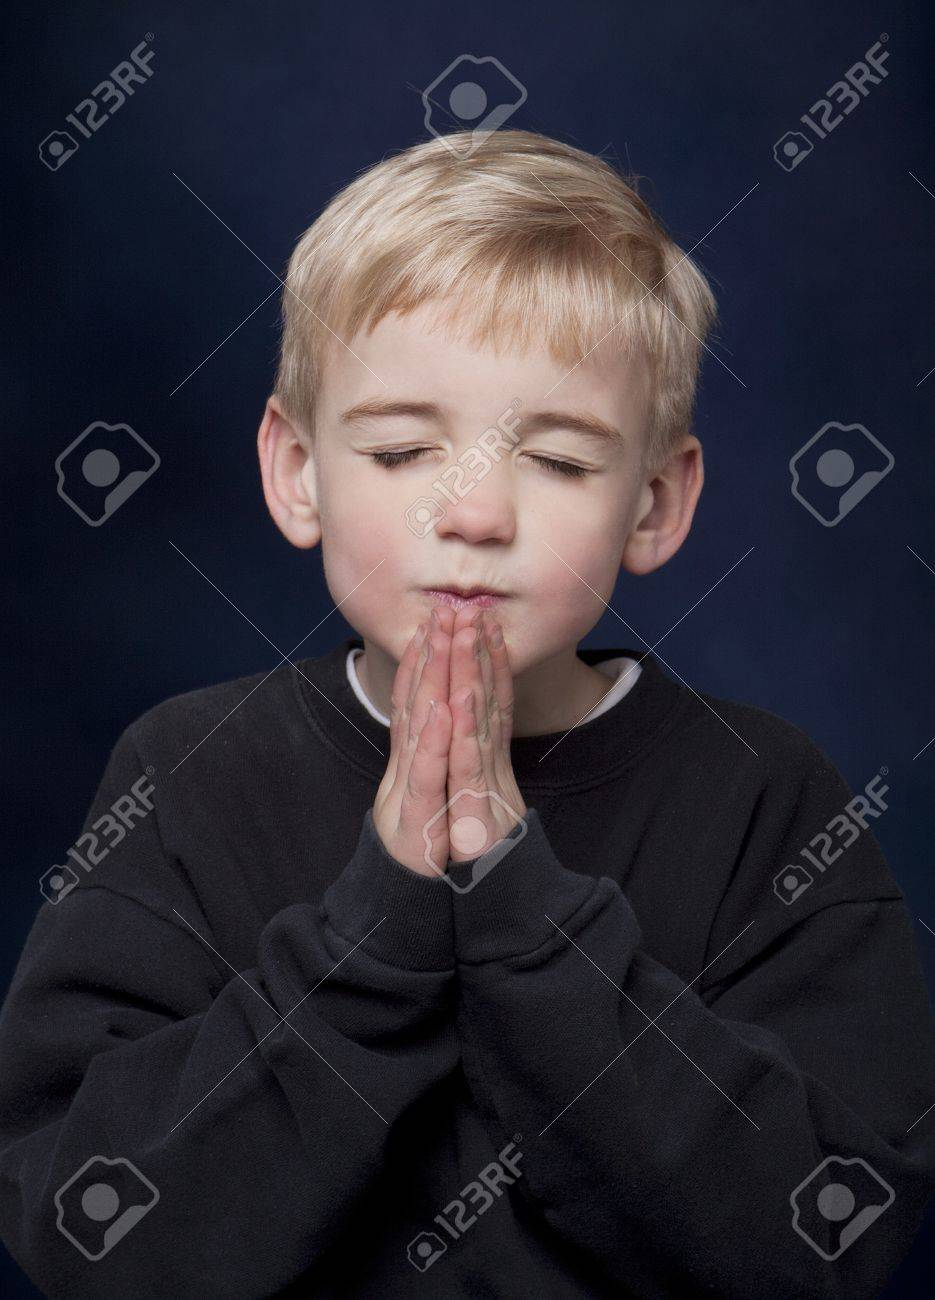 Young blond boy with his hands together in prayer. Stock Photo - 8754651